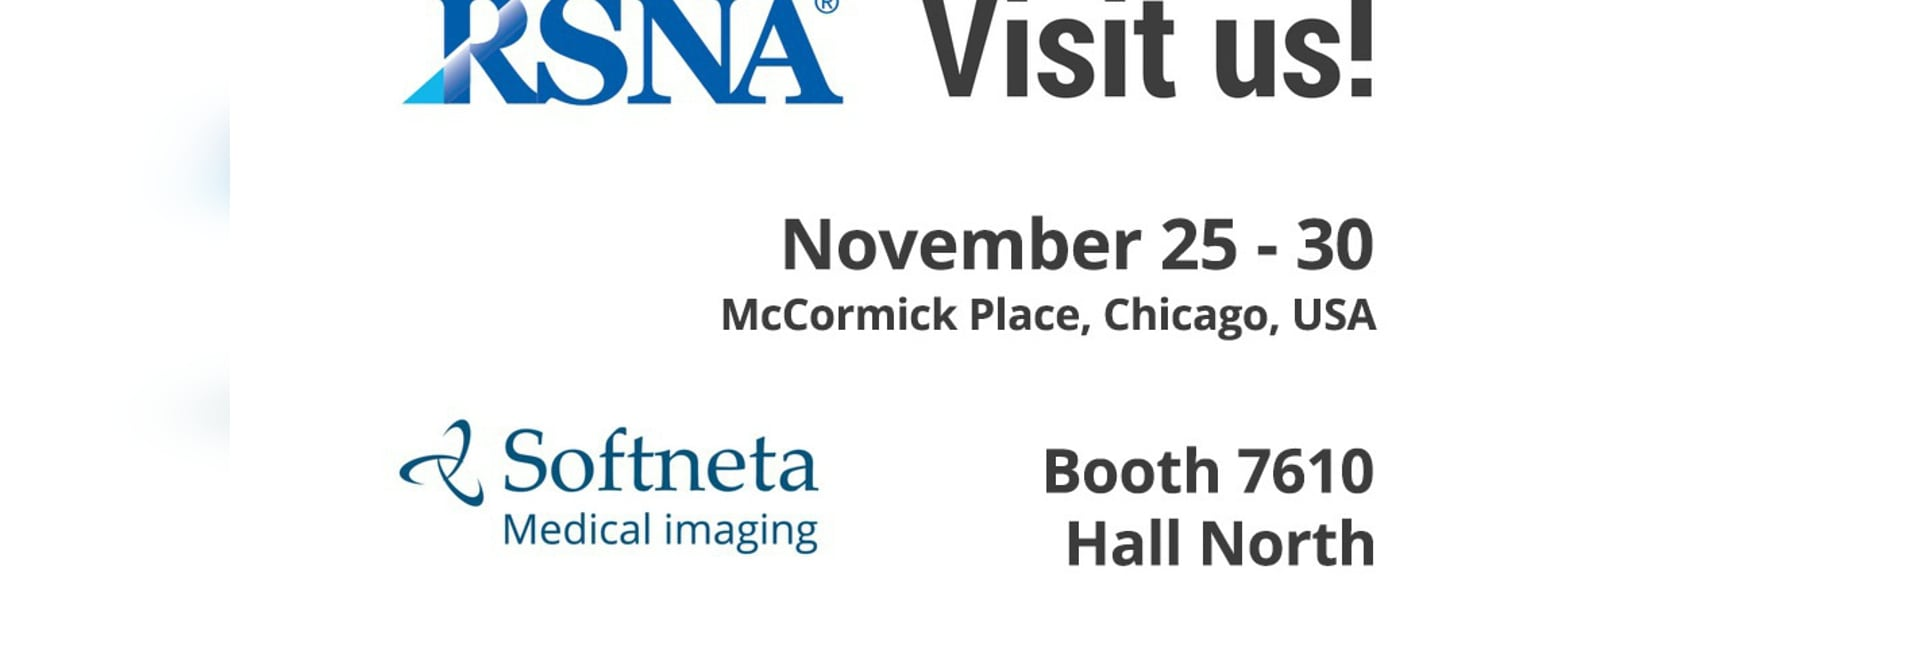 Visit Softneta booth in RSNA 2018.